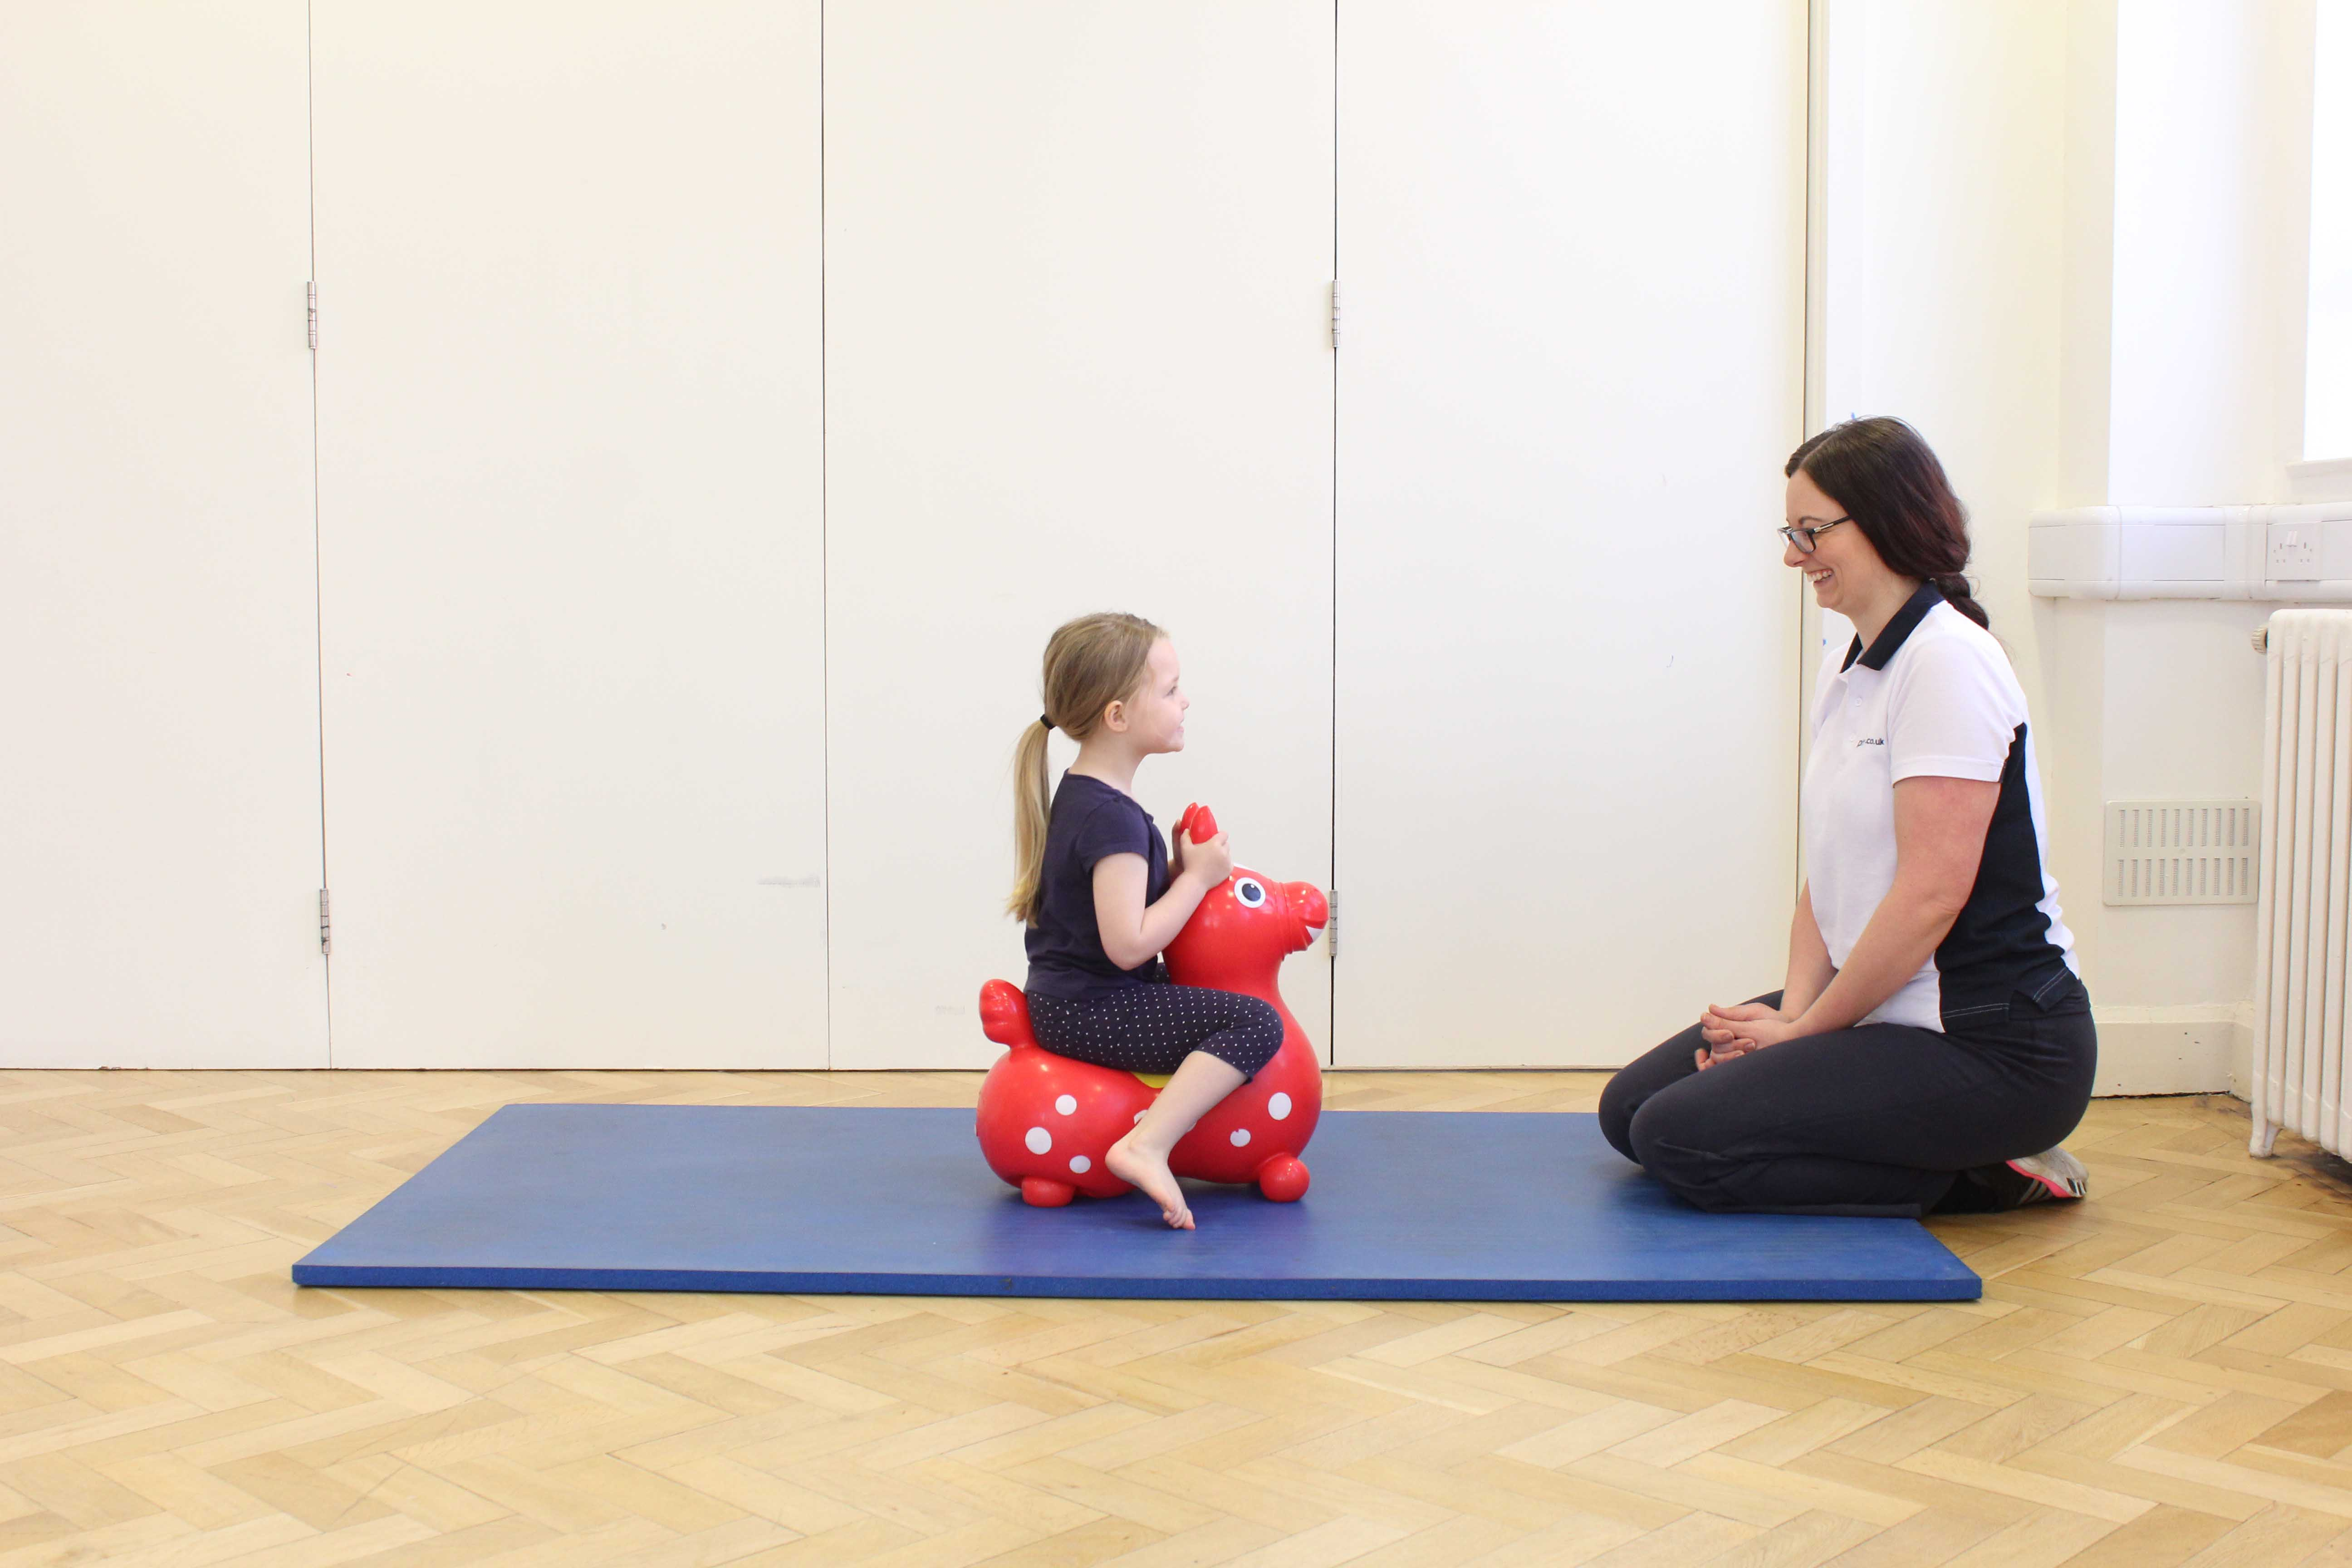 Paediatric physiotherapist promoting functional ability through play activities